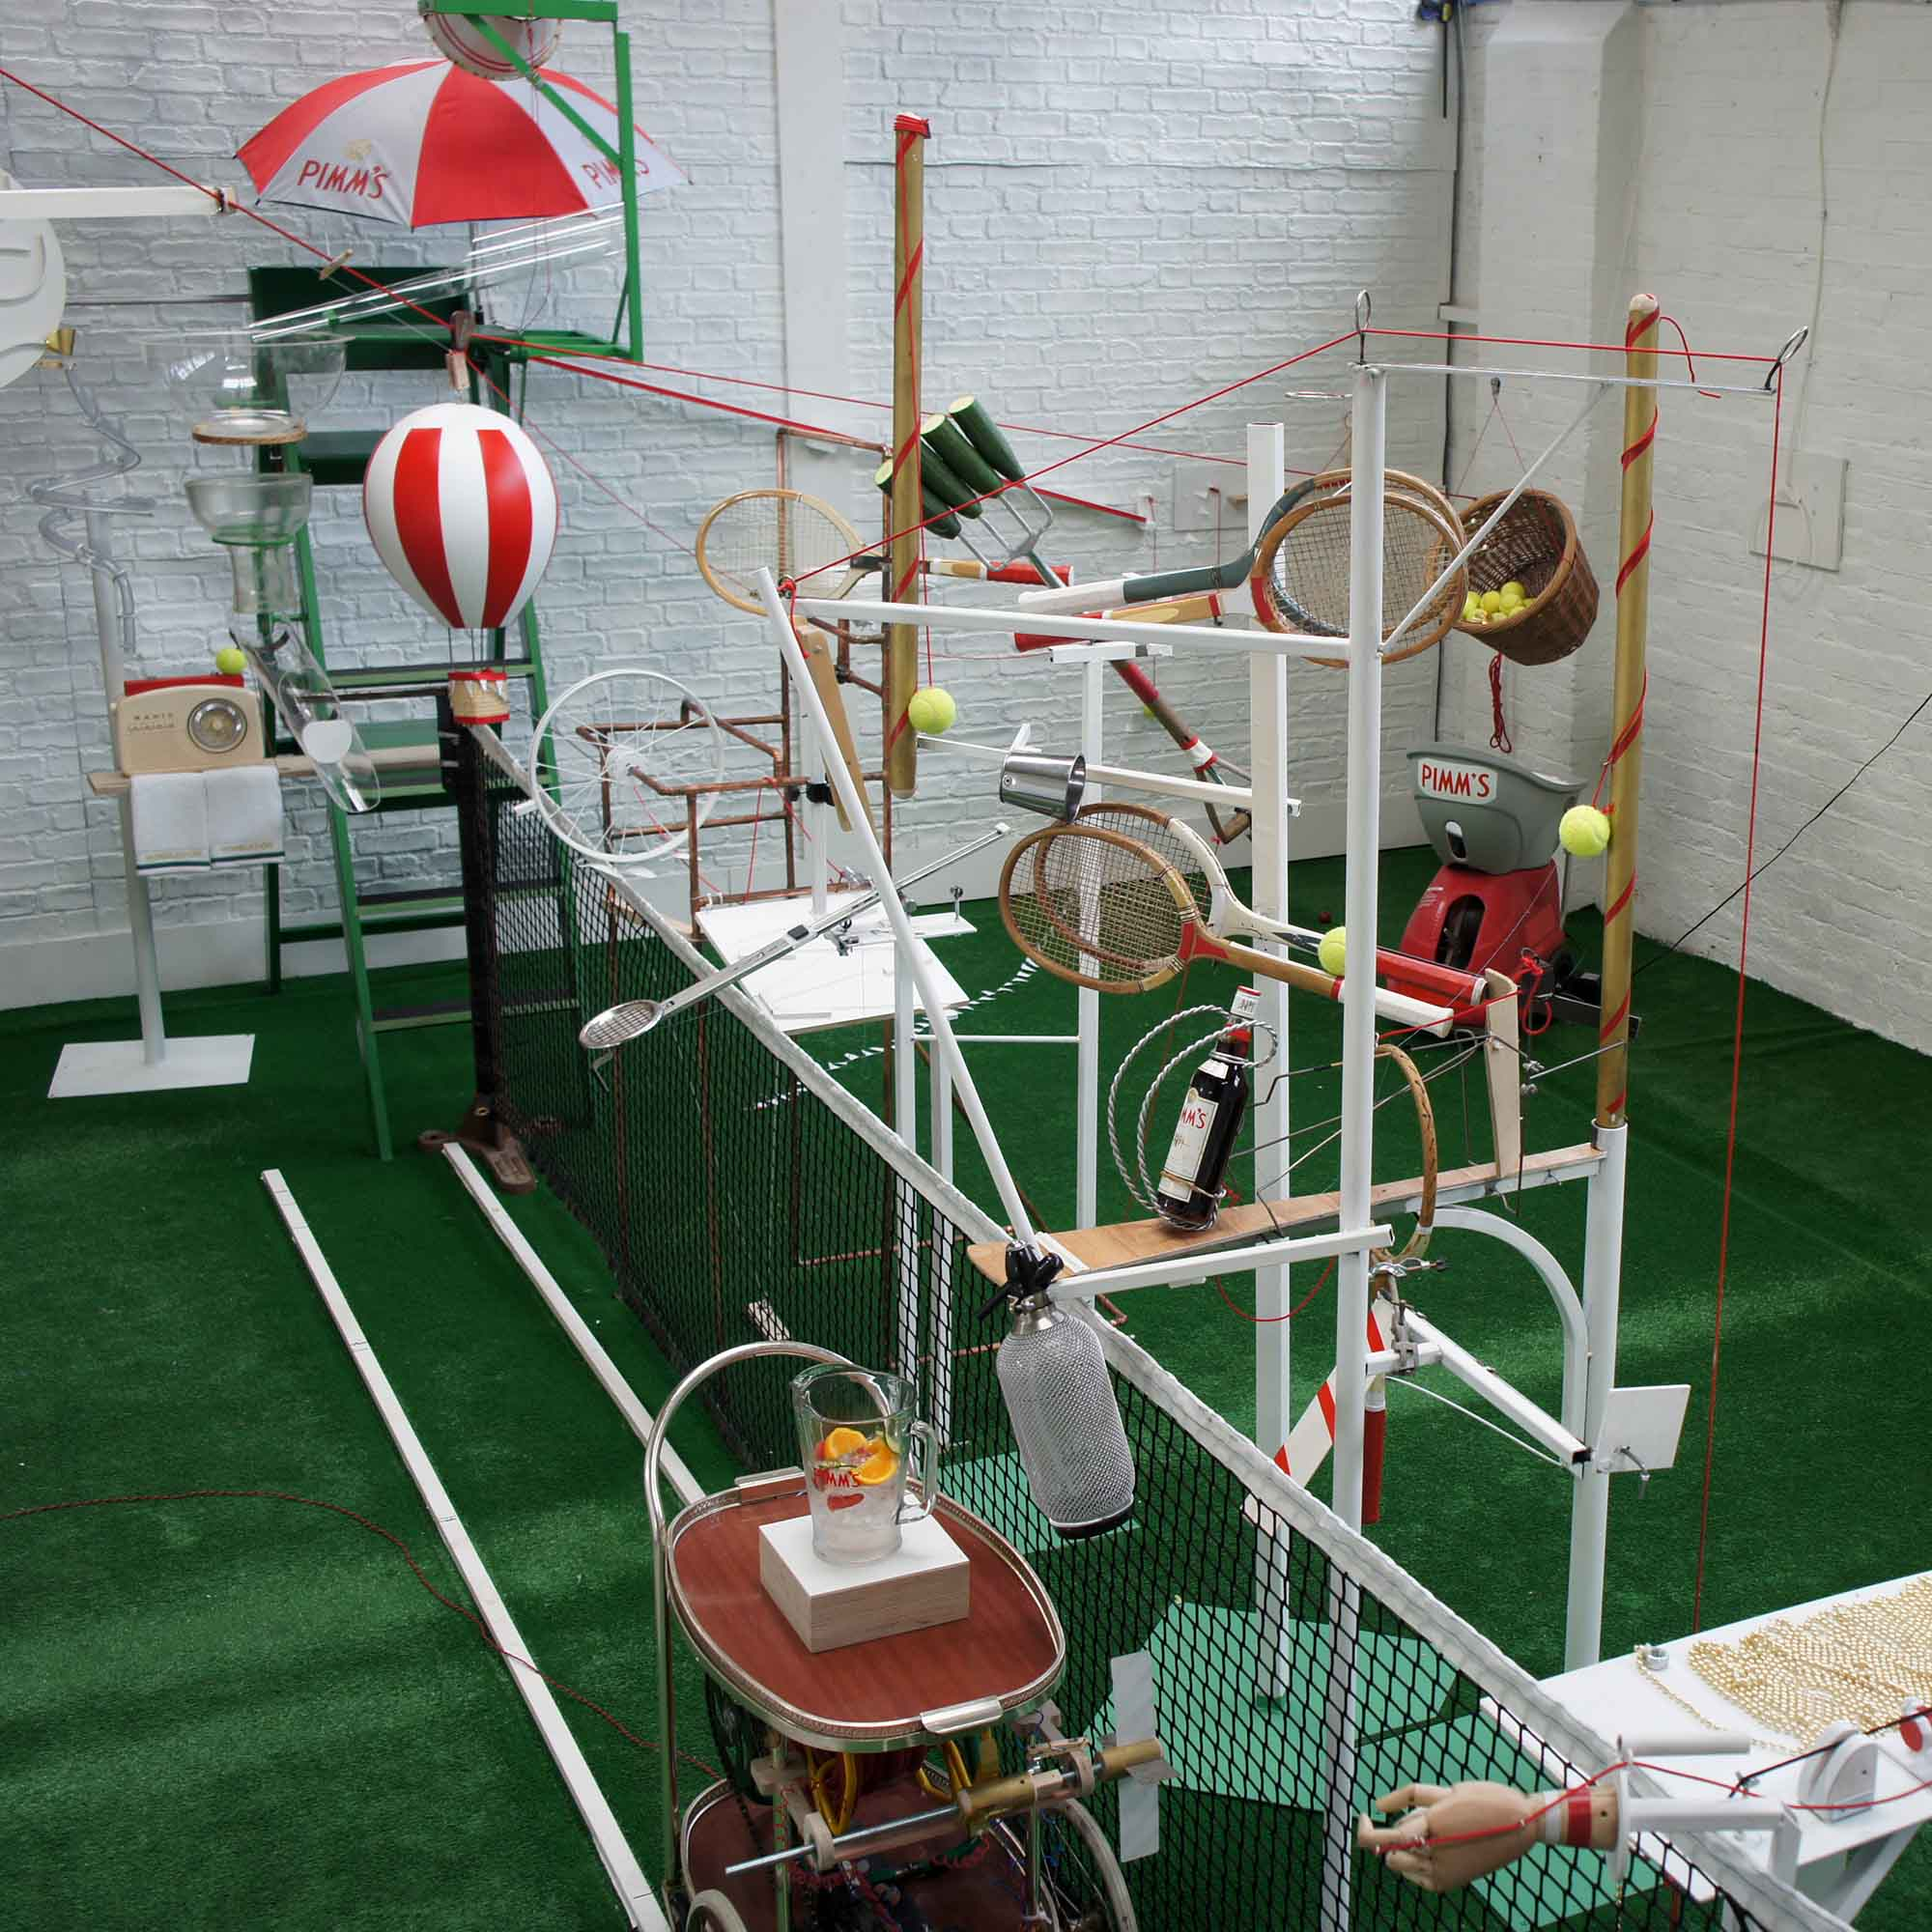 Rube Goldberg Machine for Pimms